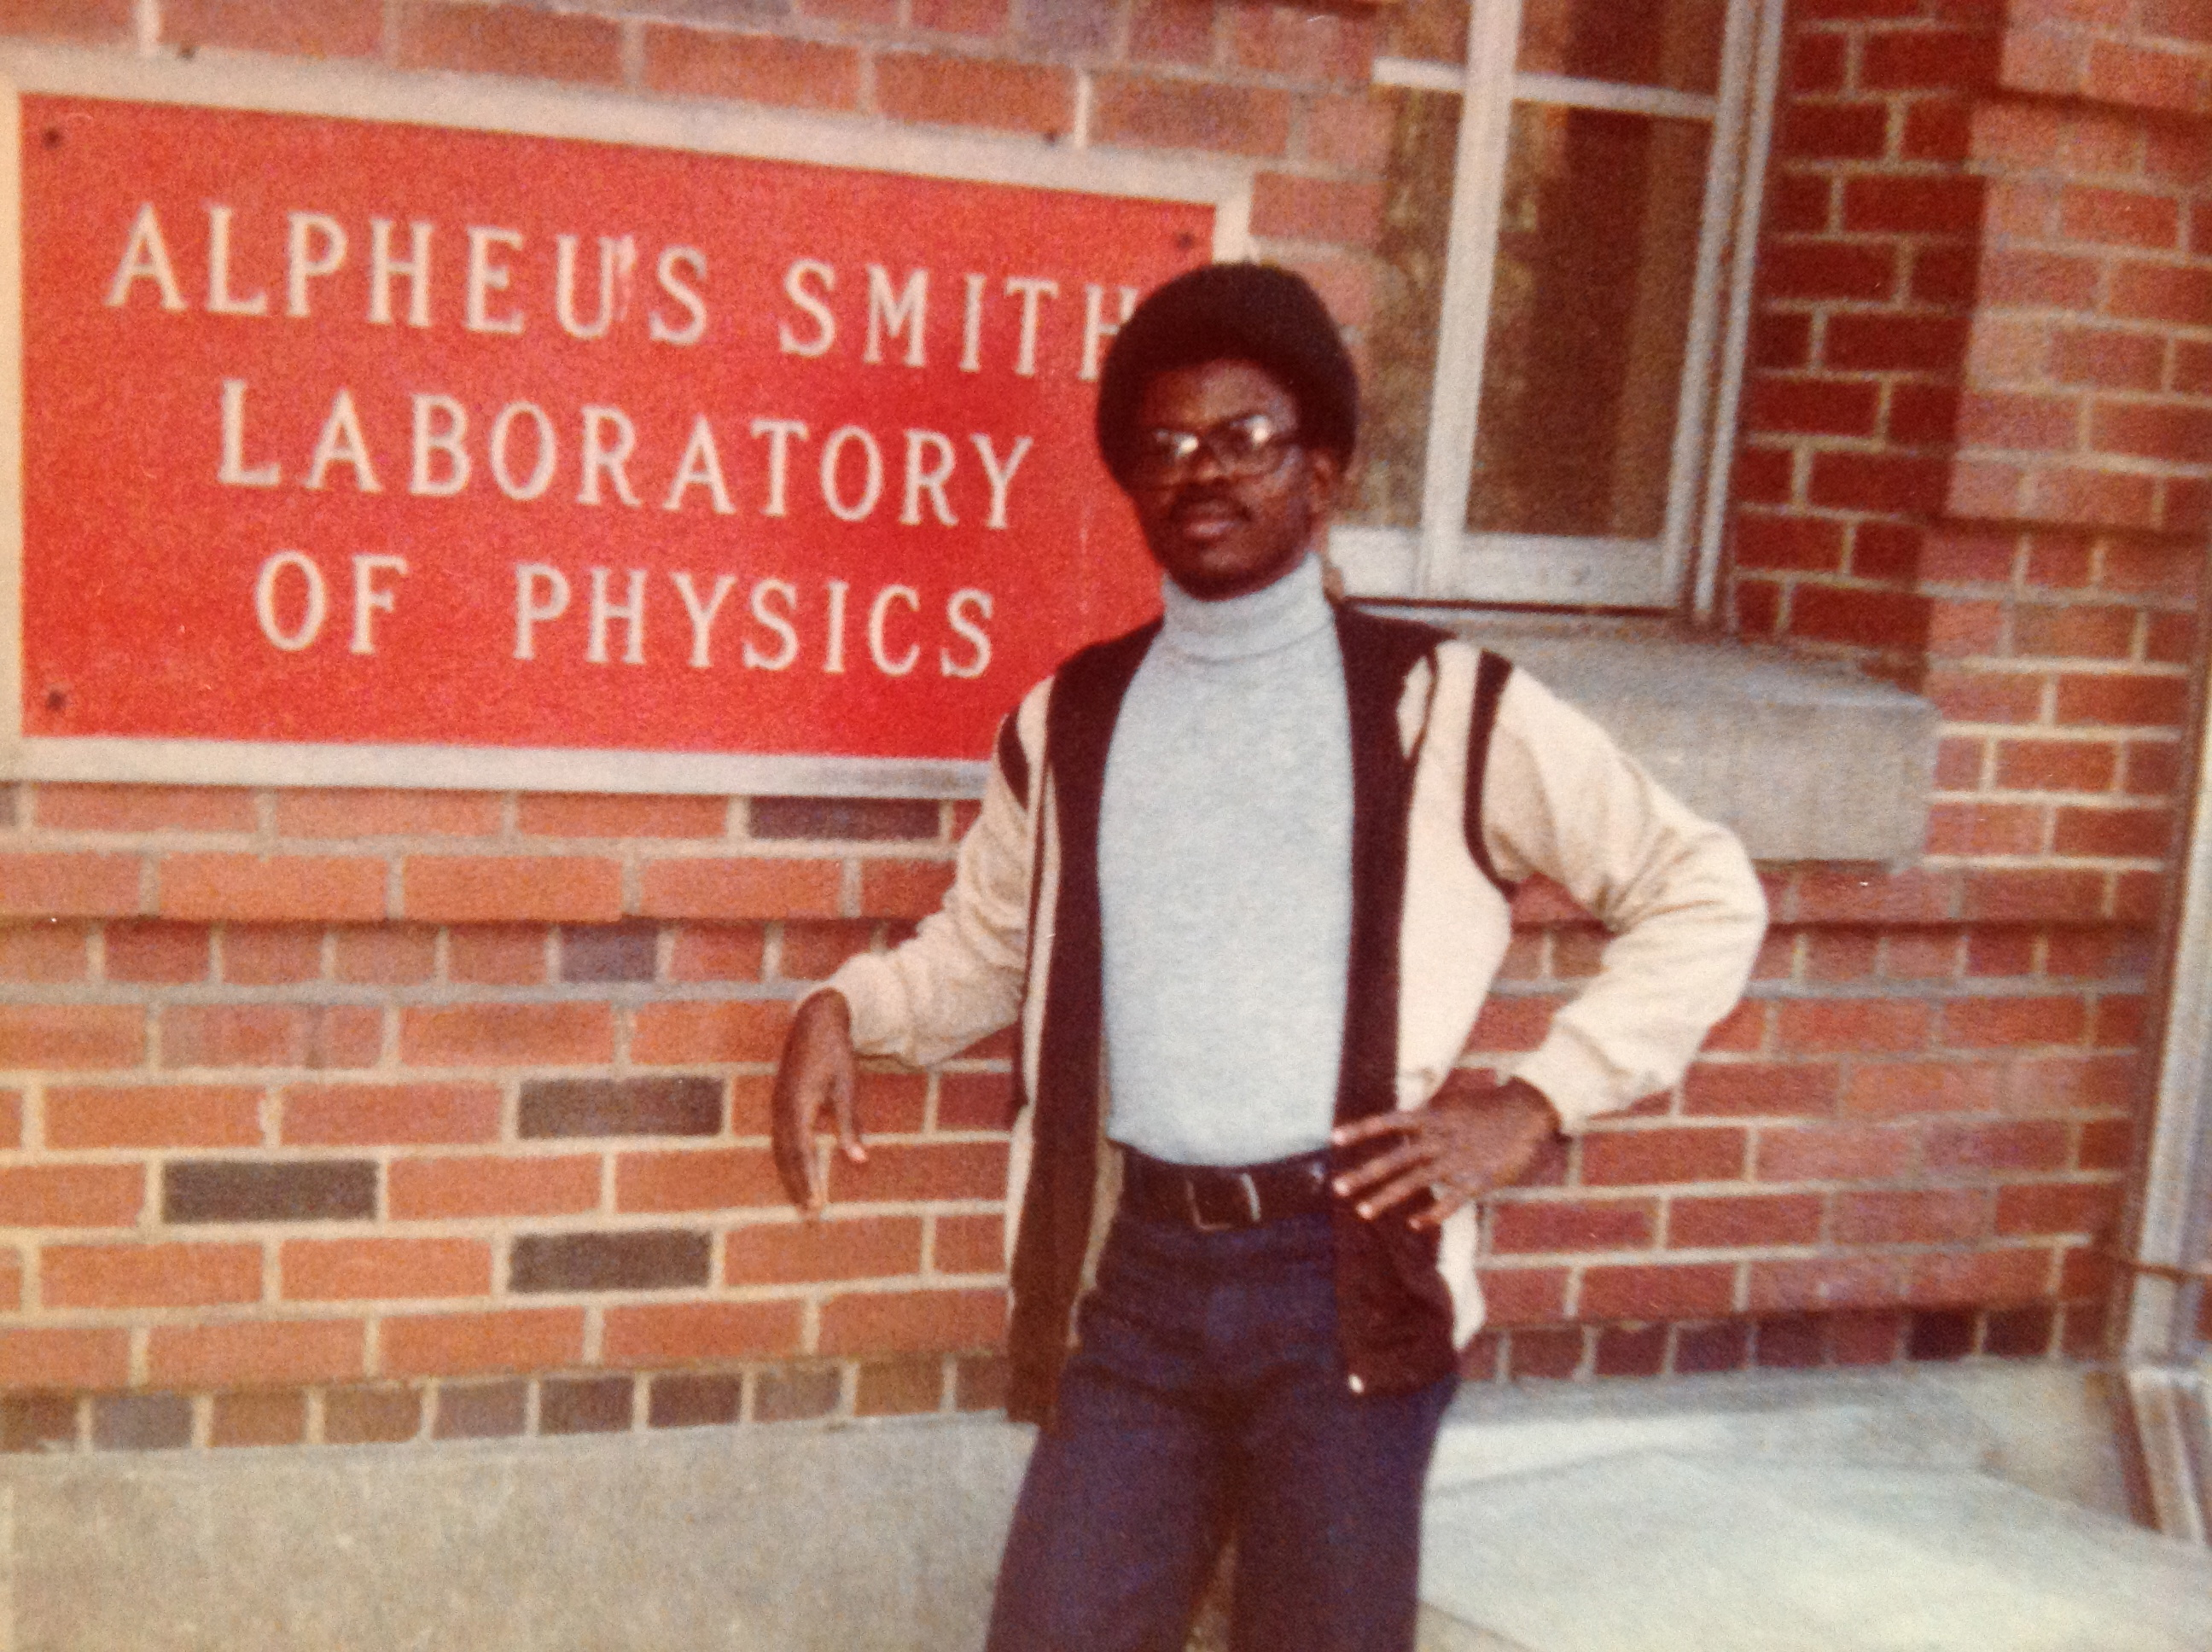 Abu Eghan at Ohio State University, shortly after arriving to the United States in 1979. Back then, he says, he thought he would get his degree and head back home. But as the political situation in Ghana grew worse, his friends and family warned him not t